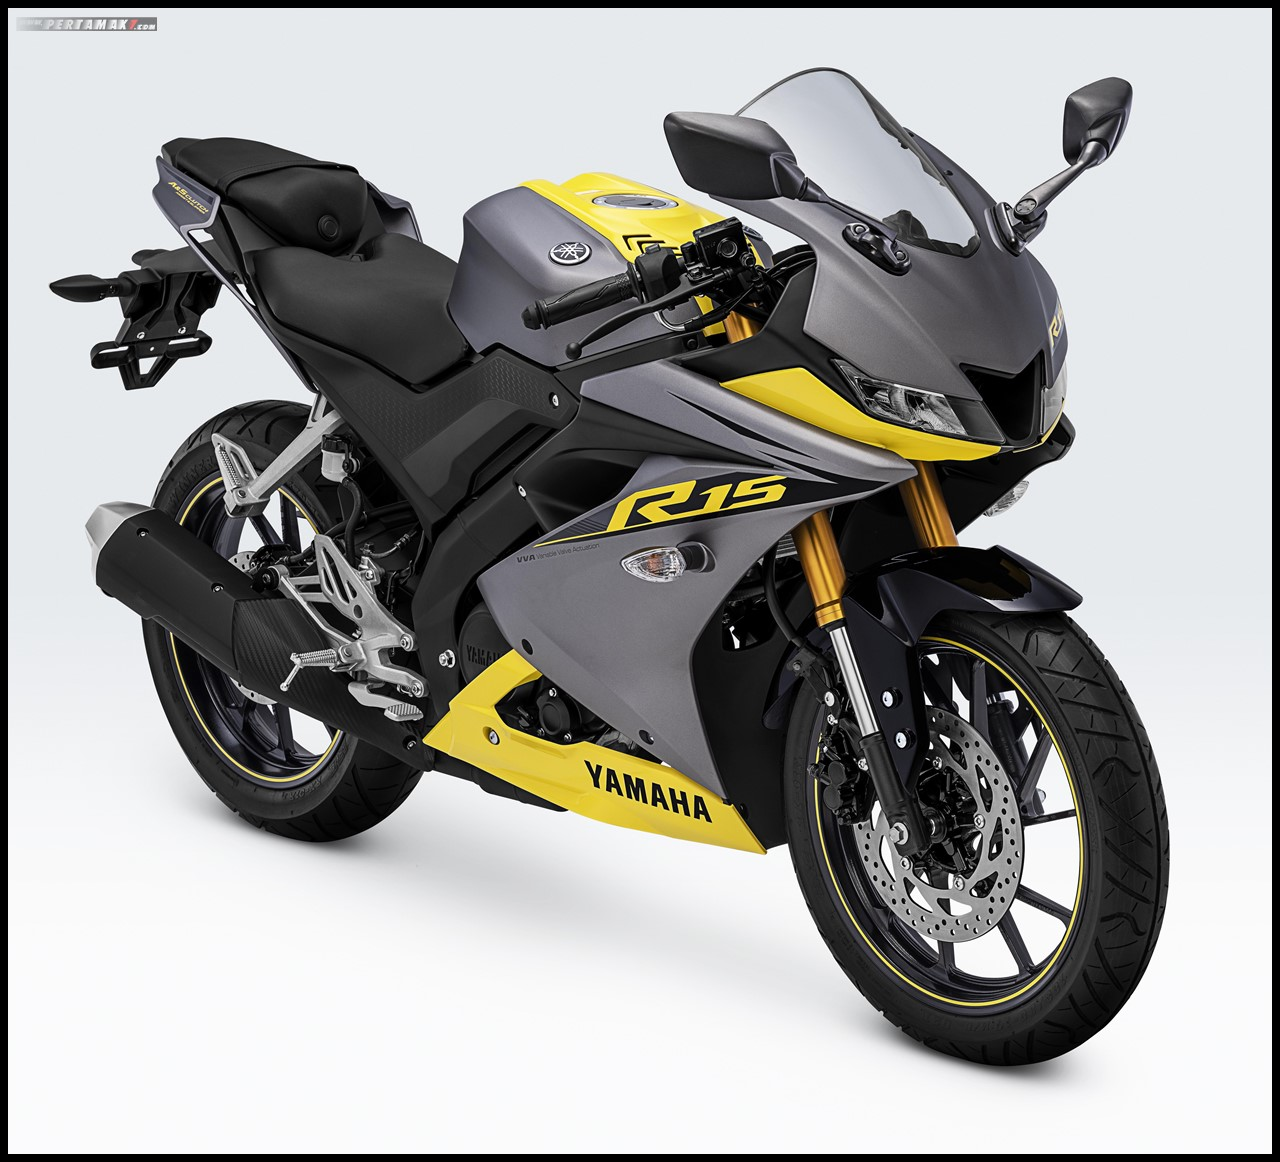 Yamaha New R15 V3.0 2019 Warna Kuning